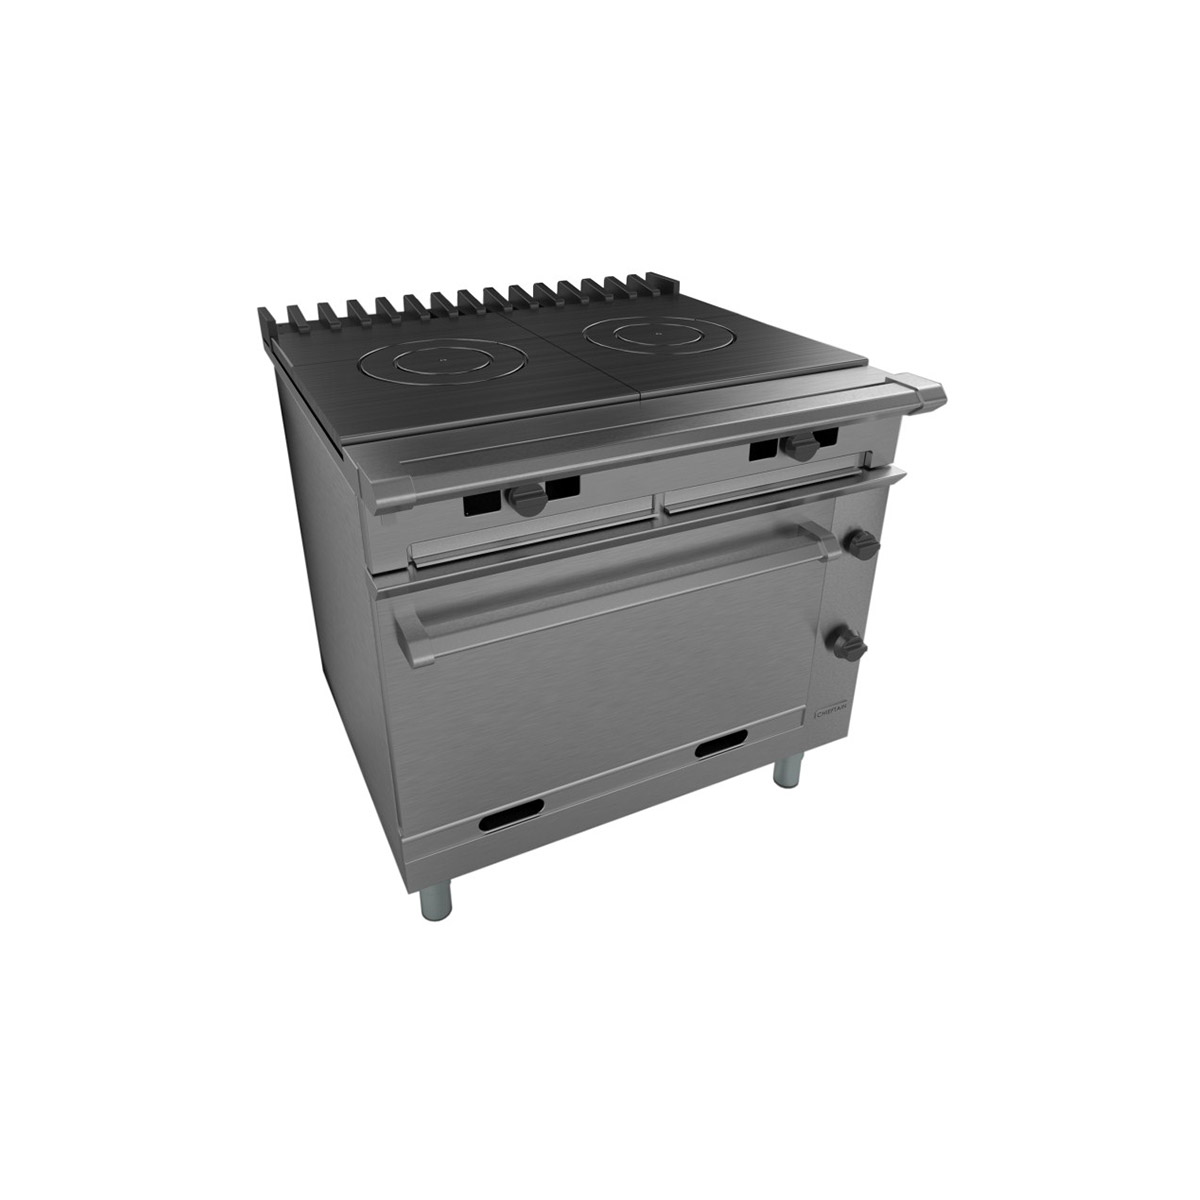 Falcon Chieftain Solid Top Gas Oven Range On Casters G1006FX